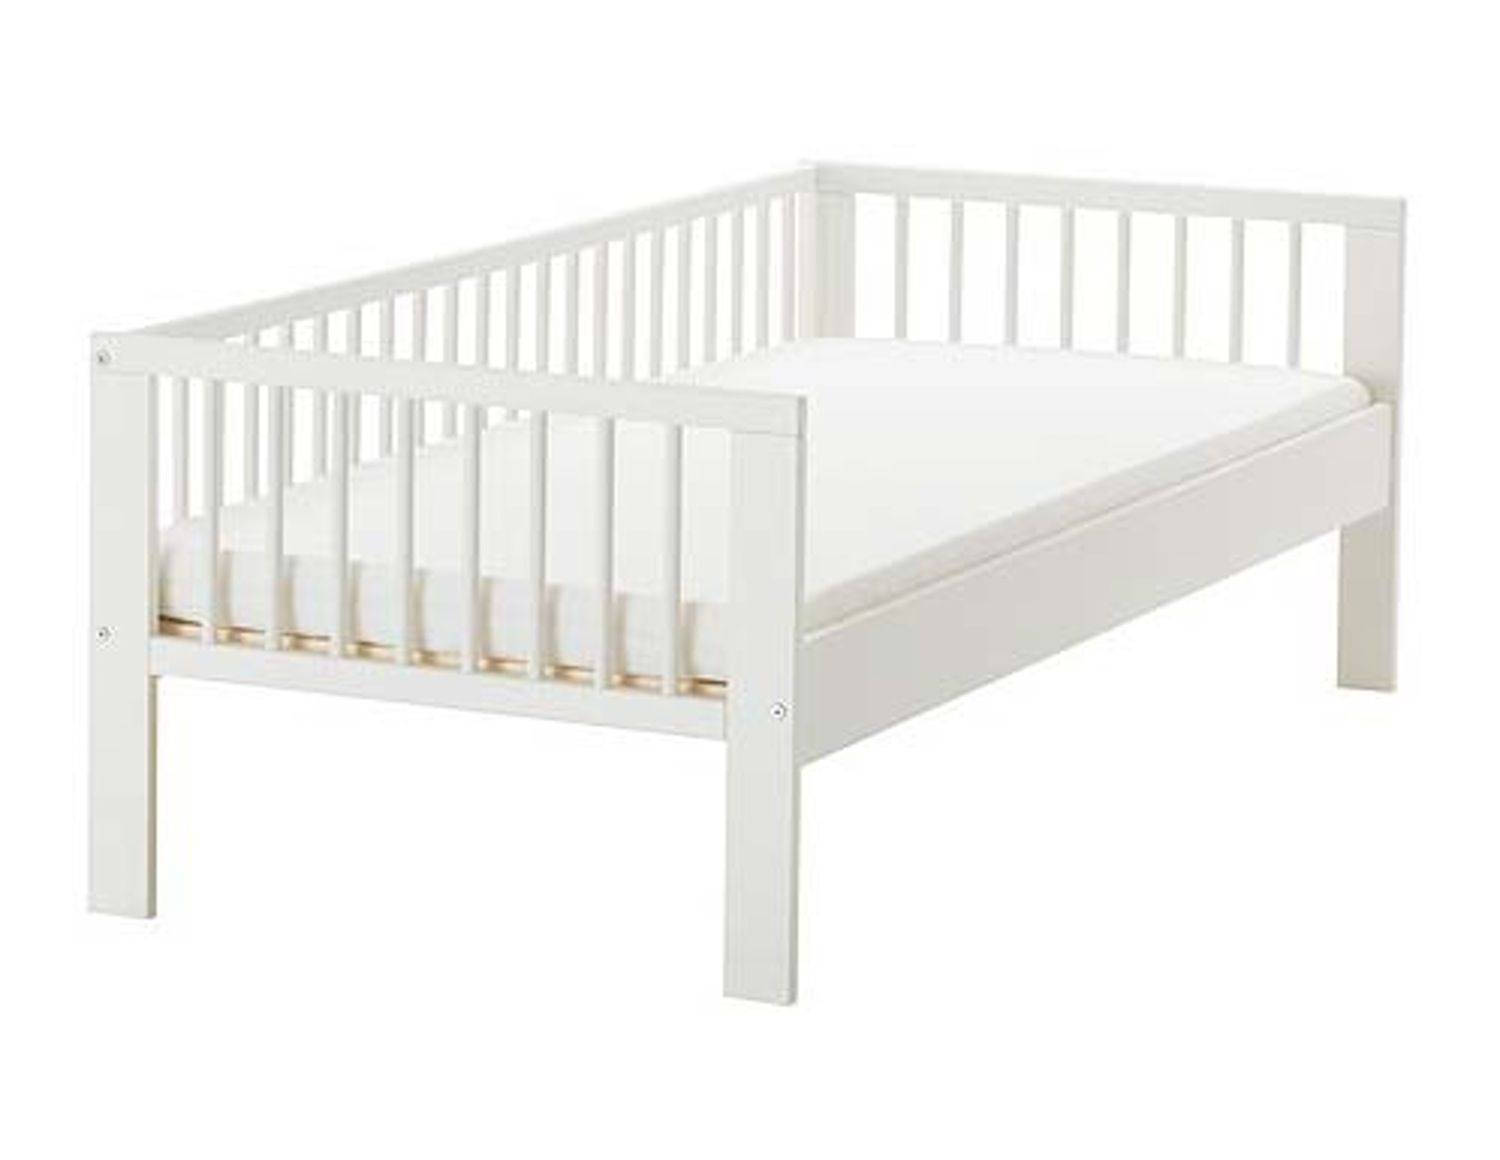 New Ikea Gulliver Bed Ikea Bed Kid Beds Toddler Bed